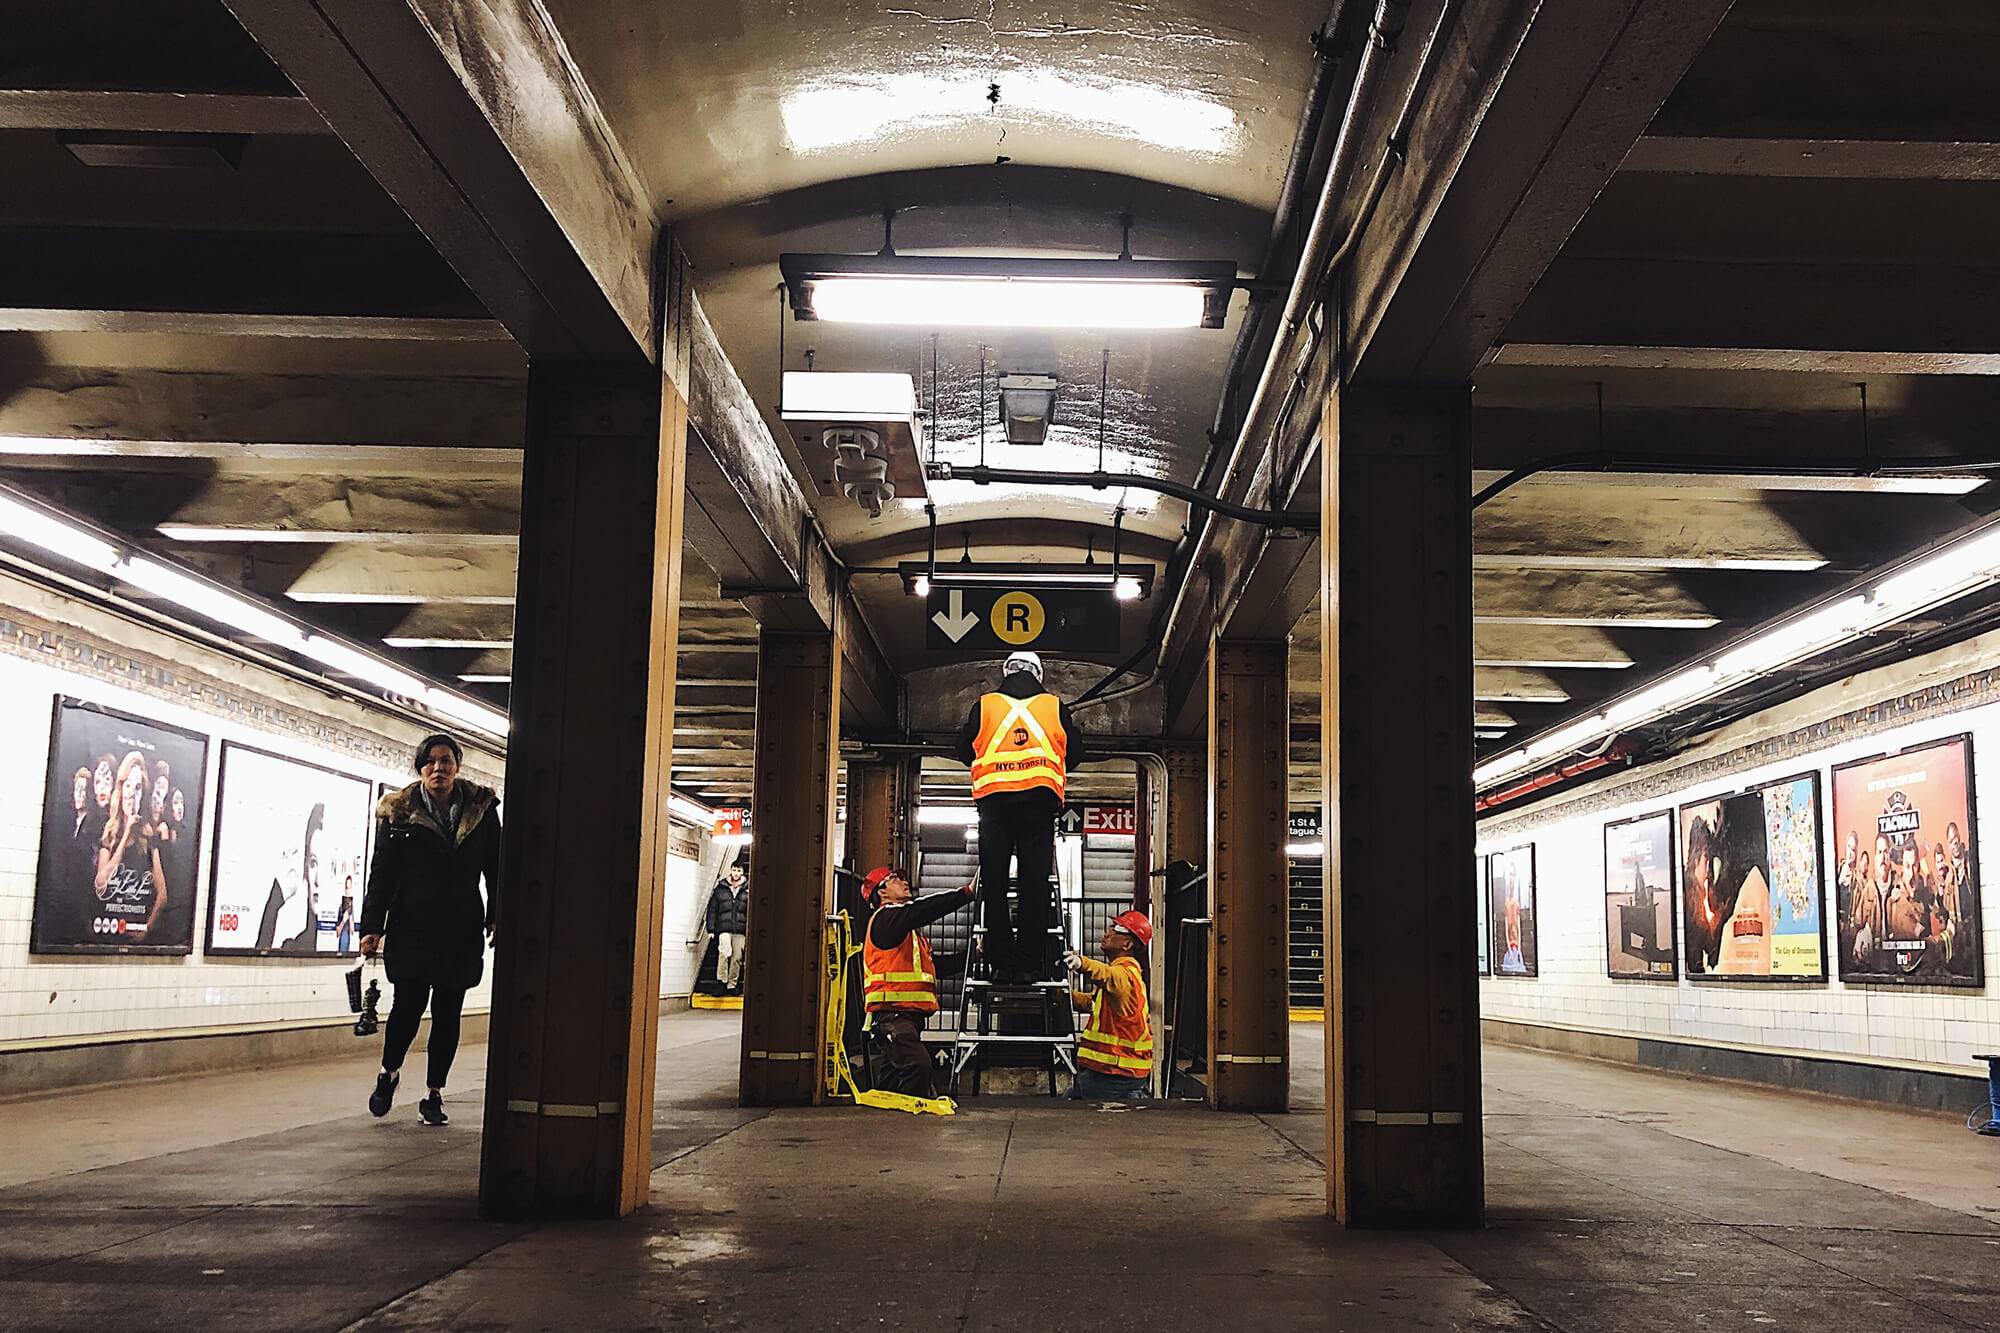 A VEOVO INSTALLATION IN A NYC SUBWAY, ONE OF THE TRANSIT TECH LAB ACCELERATOR PARTICIPANTS